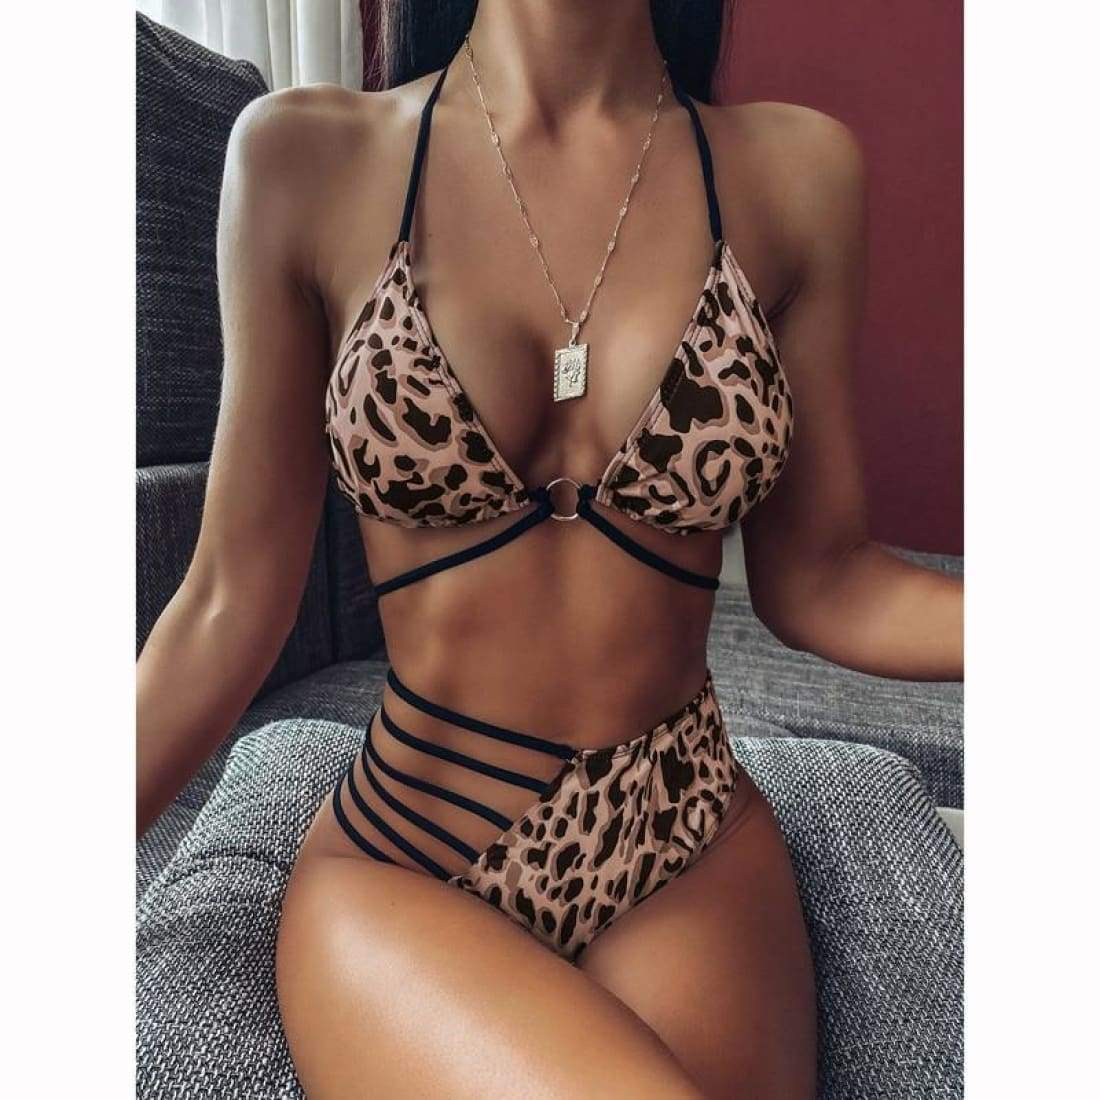 Beach breeze bikini - Leo / S - swimsuit swimsuits bikini bikinis bathing suit bathing suits swimwear swimming suits